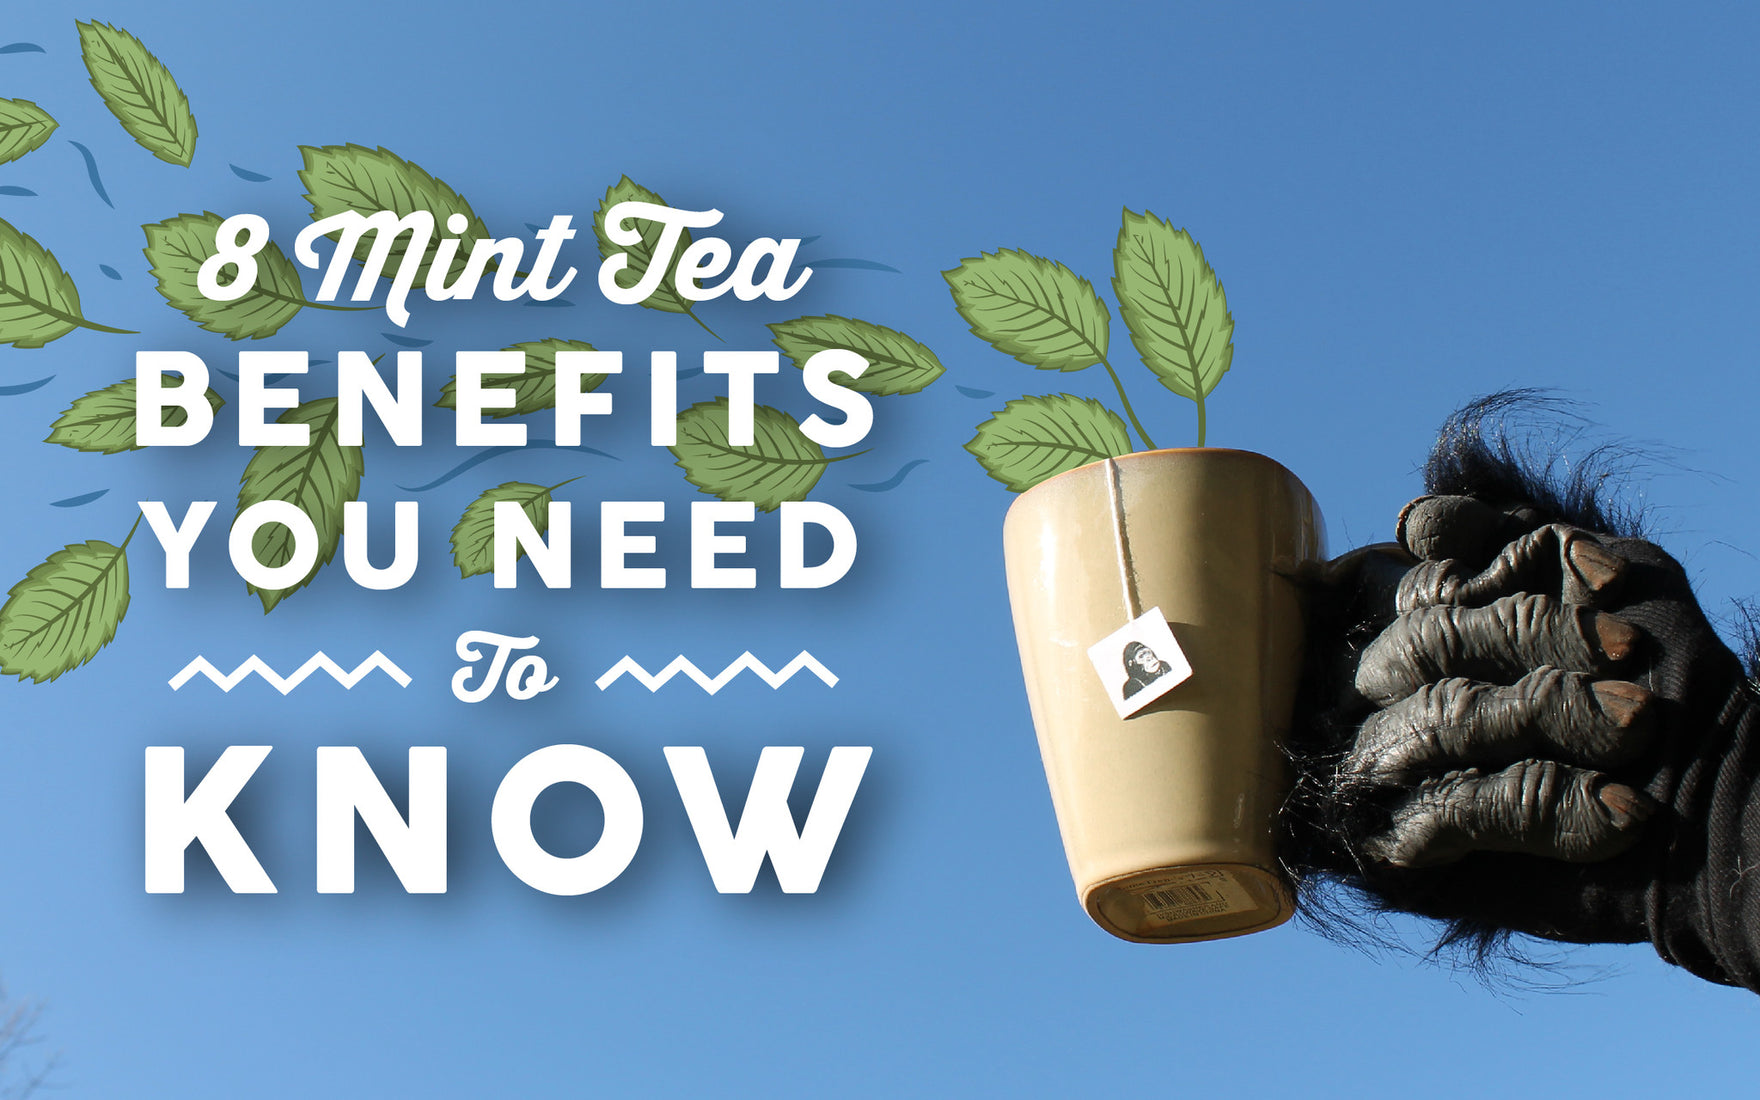 8 Mint Tea Benefits You Need to Know